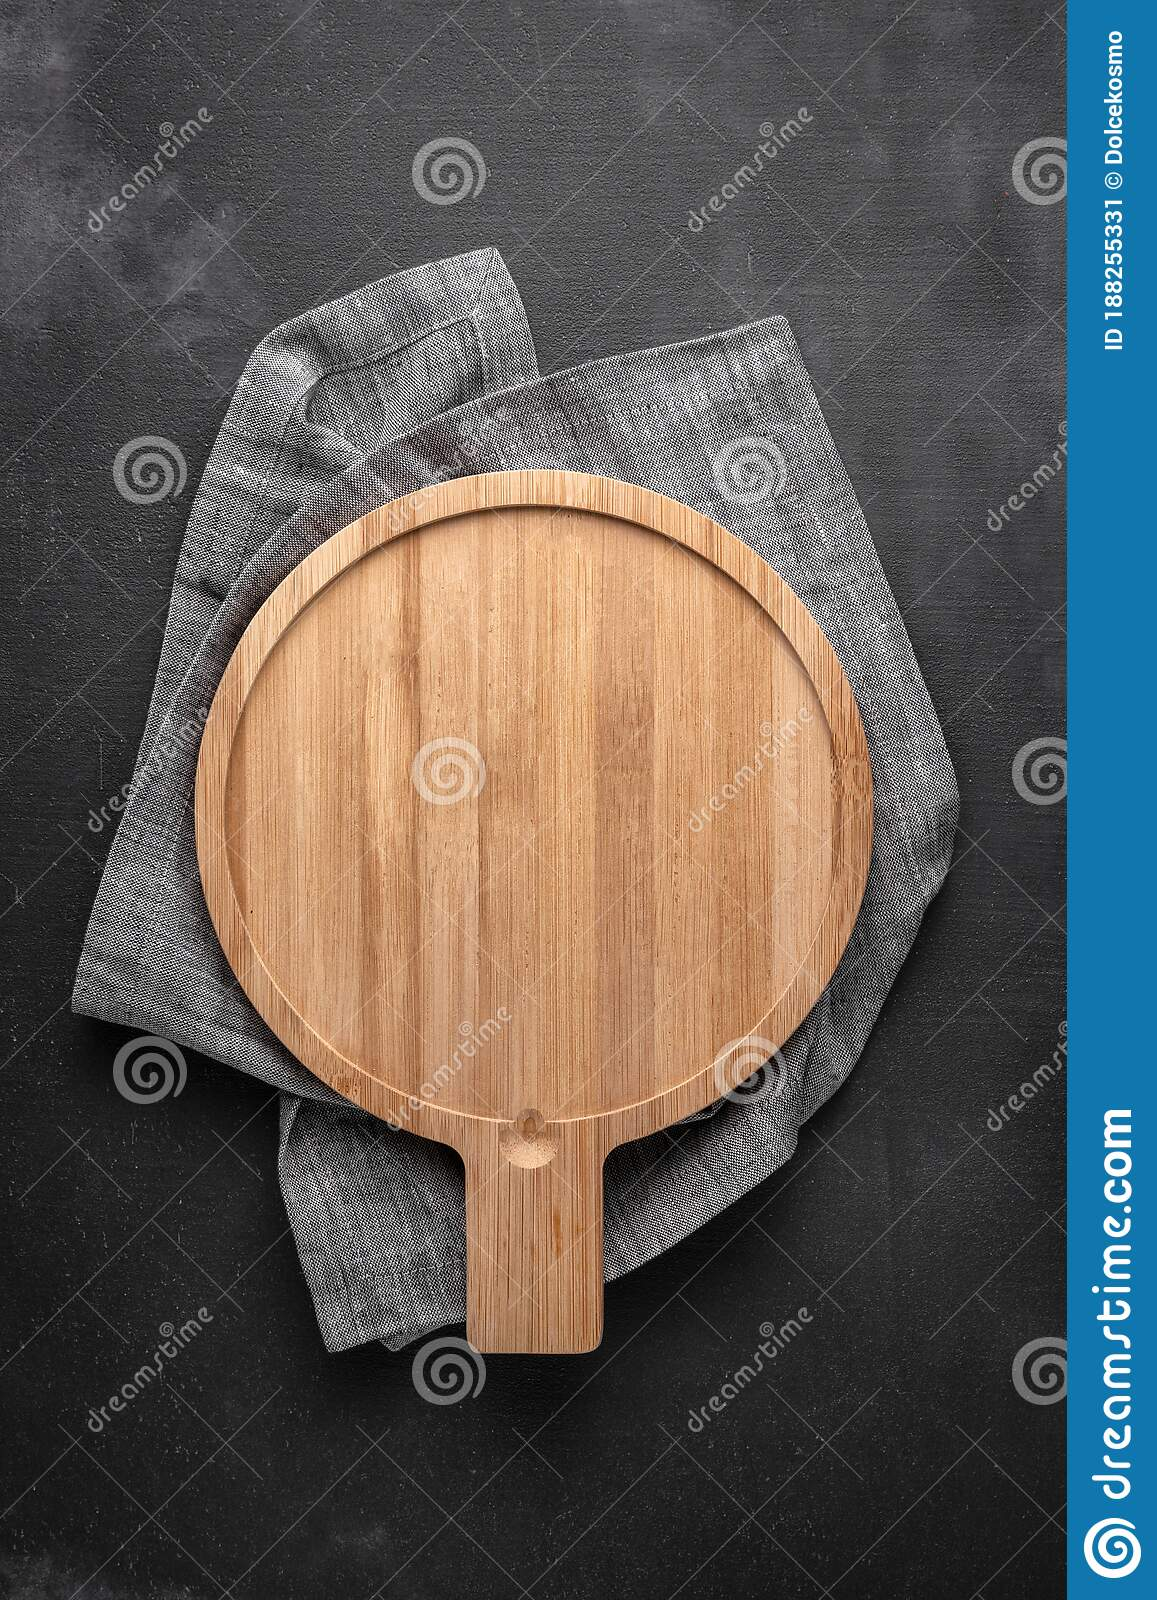 Round Wooden Cutting Board With Tablecloth In The Middle Of A Black And Gray Background Free Space For Your Text Top View Stock Image Image Of Copy Decorative 188255331